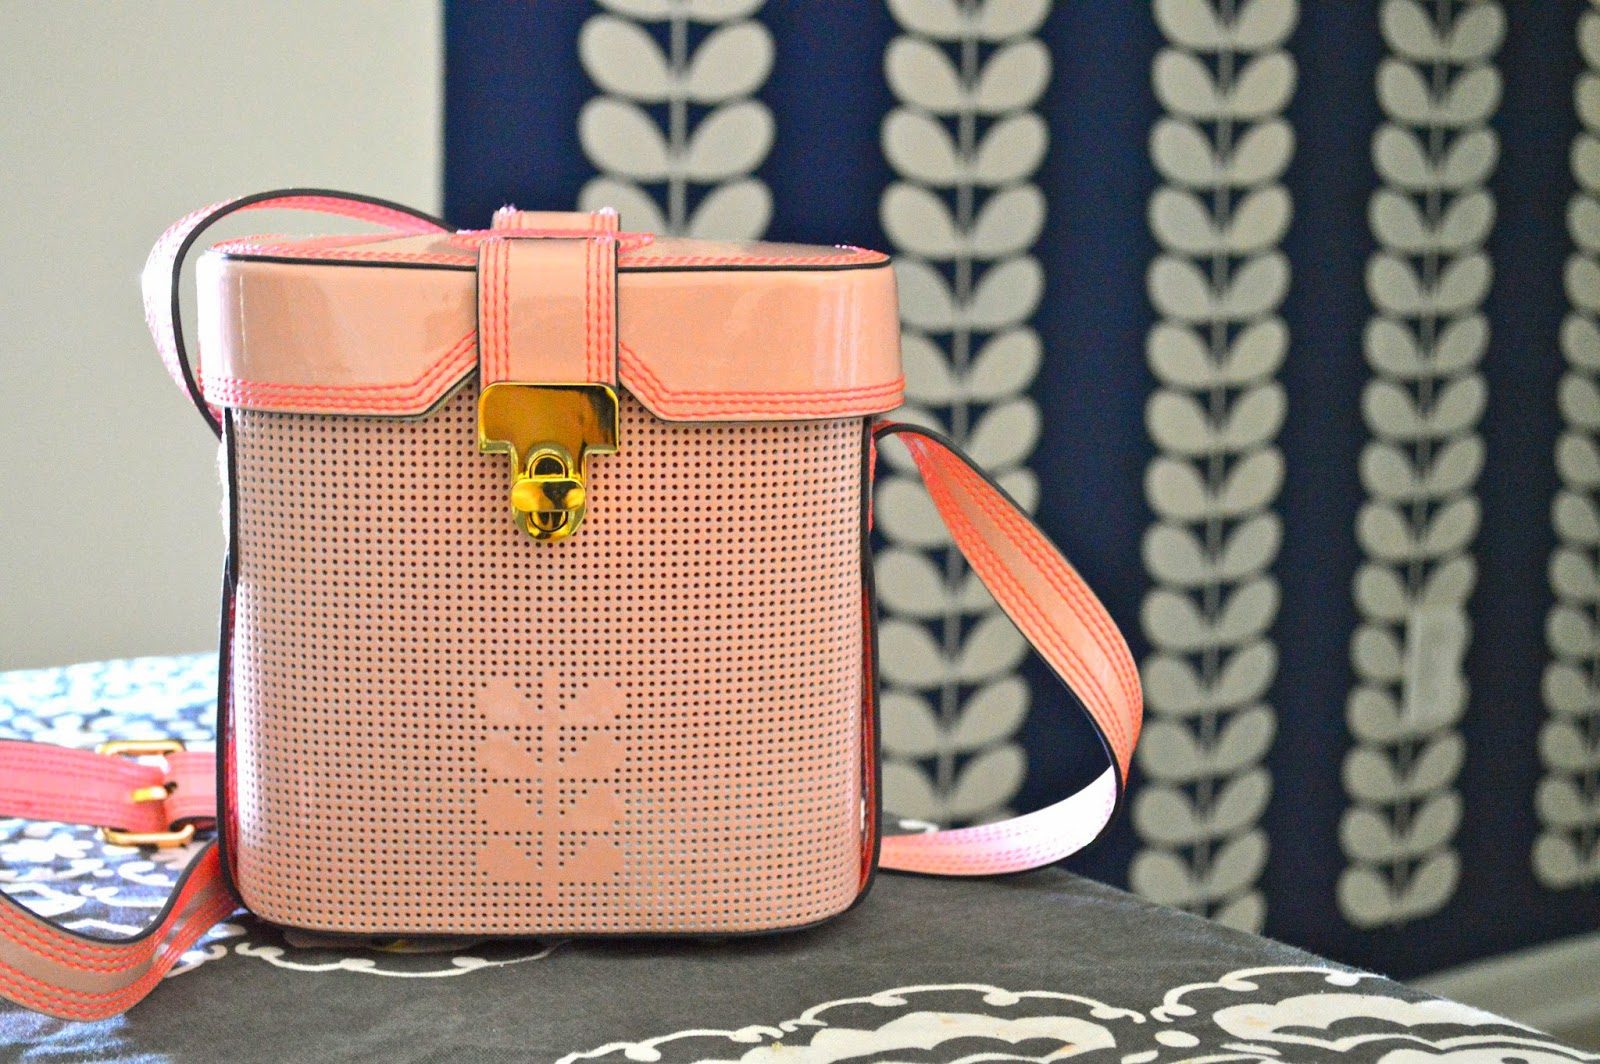 f9d226e89c Orla Kiely + Gilt Haul: Huckleberry Bag